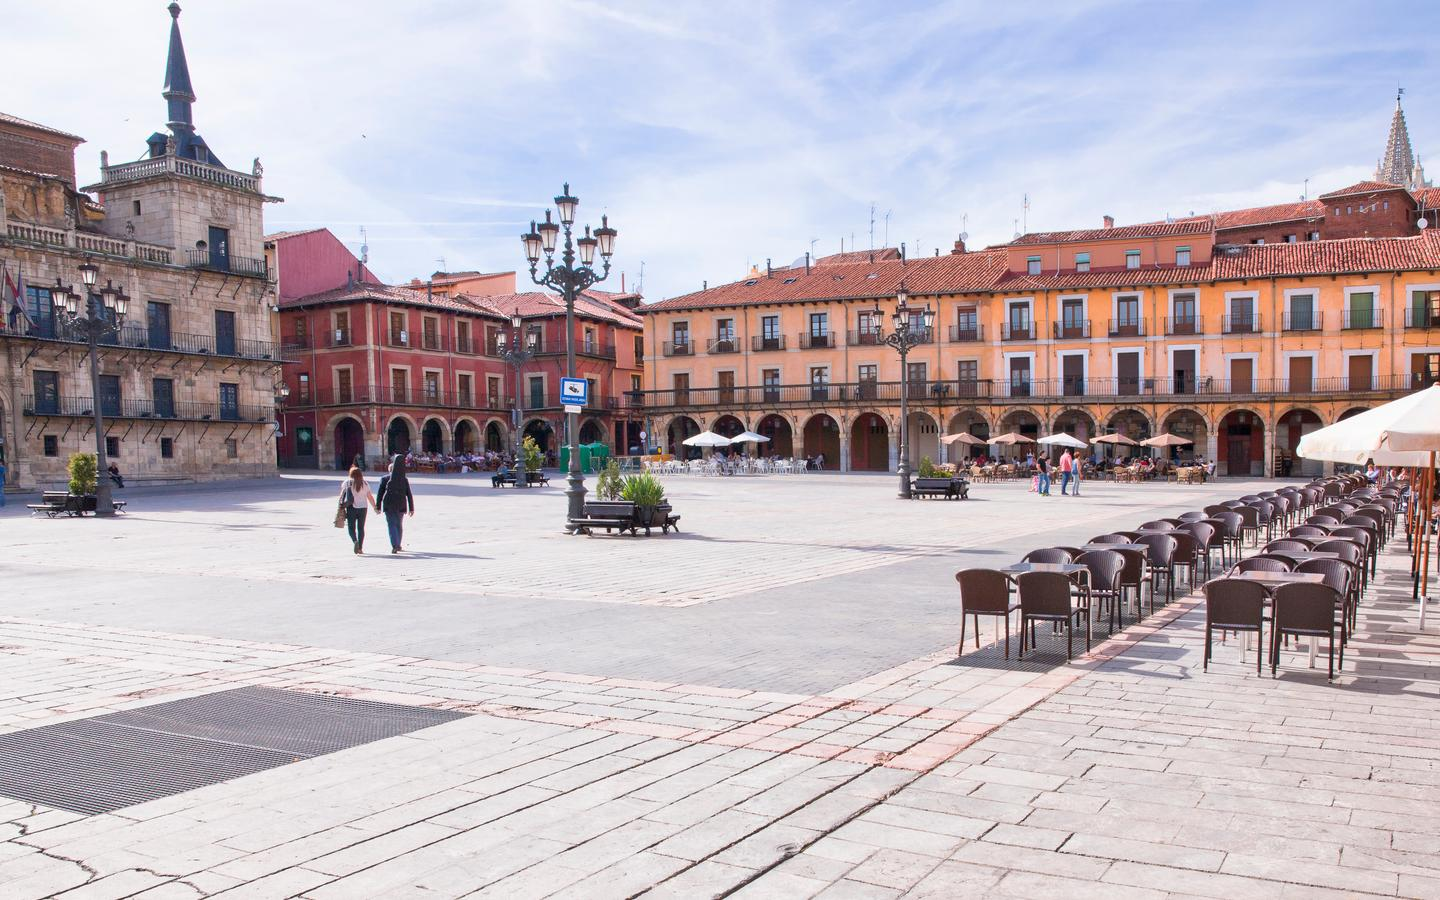 Hotels in León